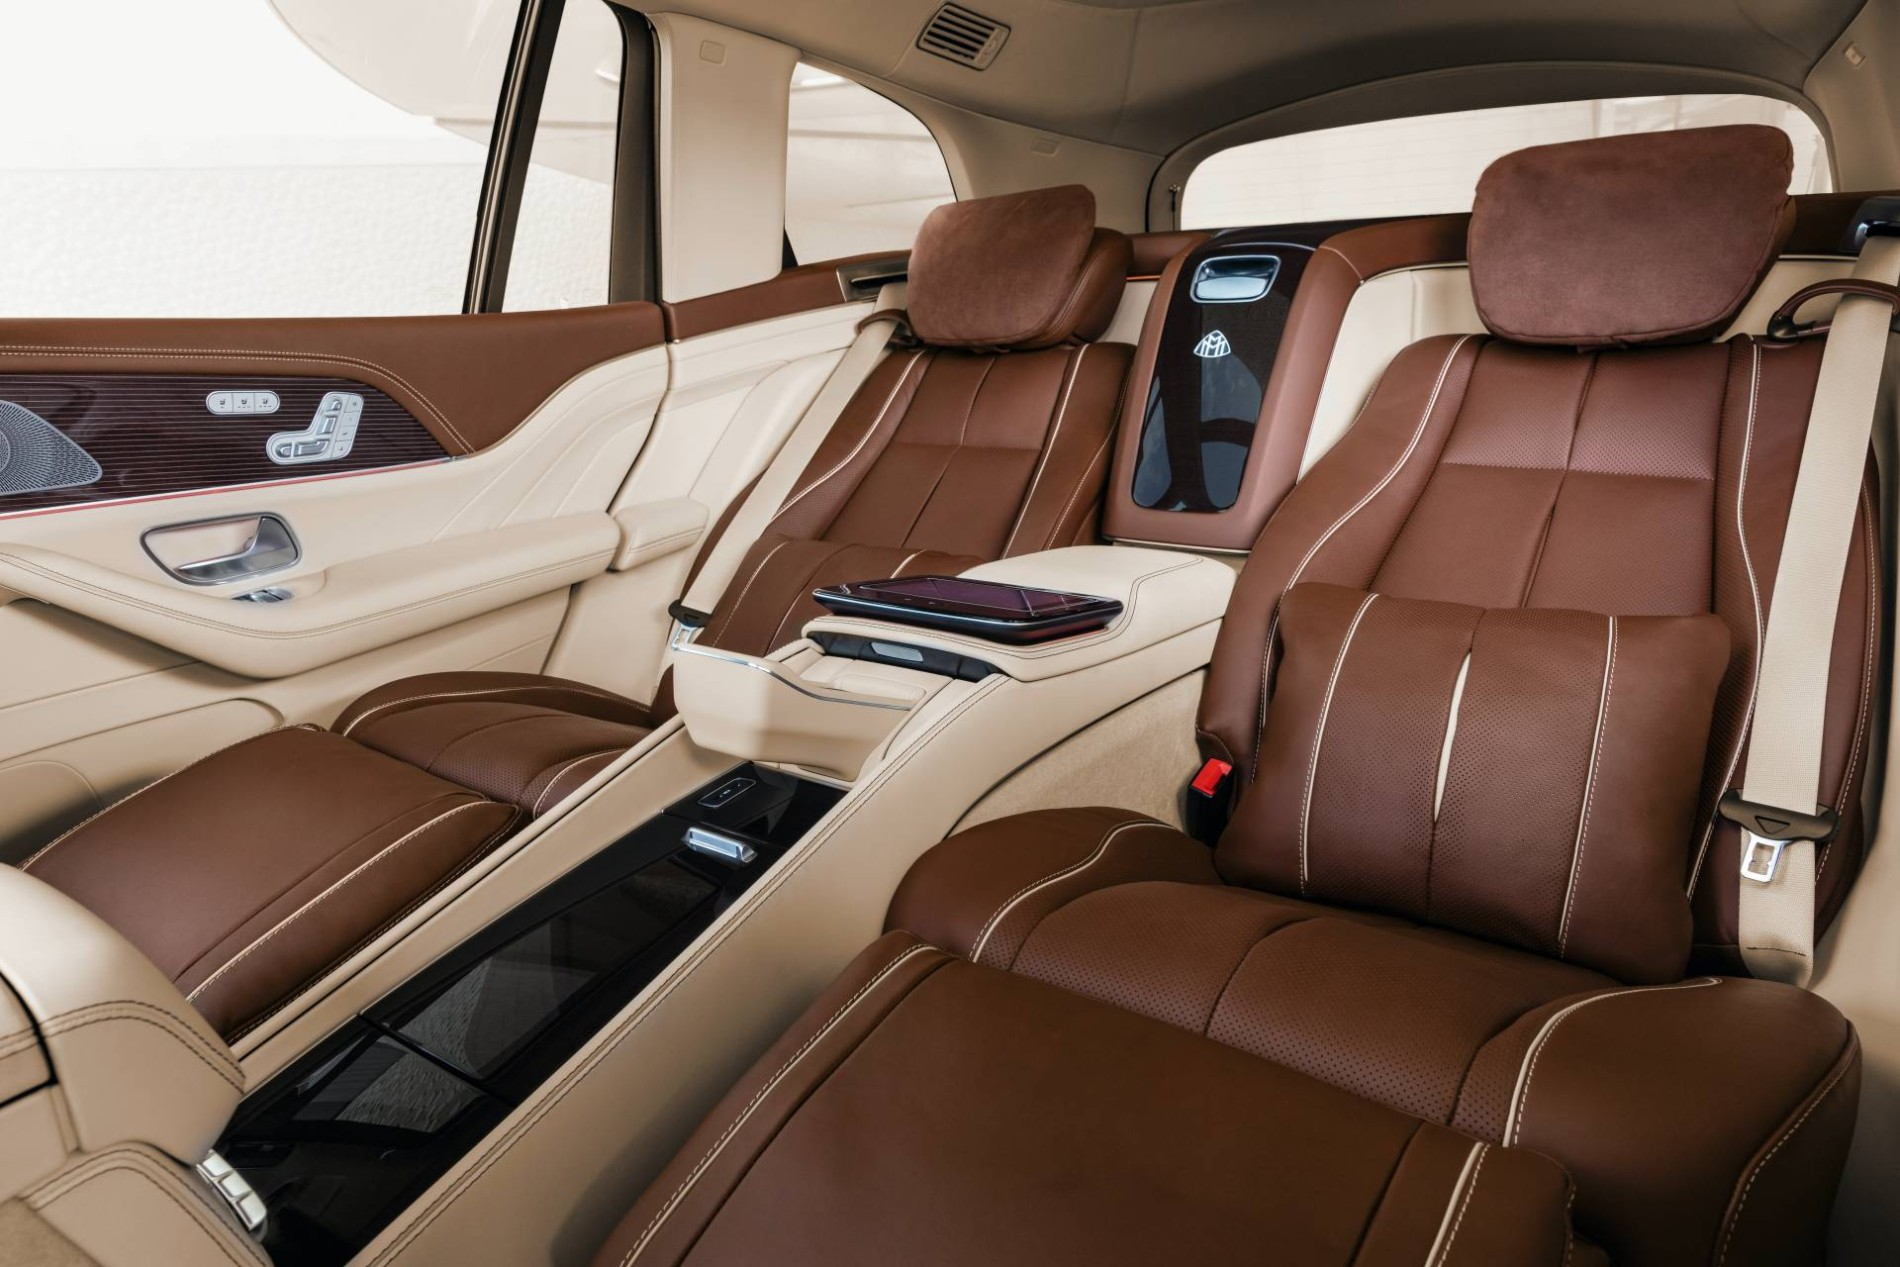 Mercedes-Maybach GLS 600 - Mercedes-Maybach GLS 600